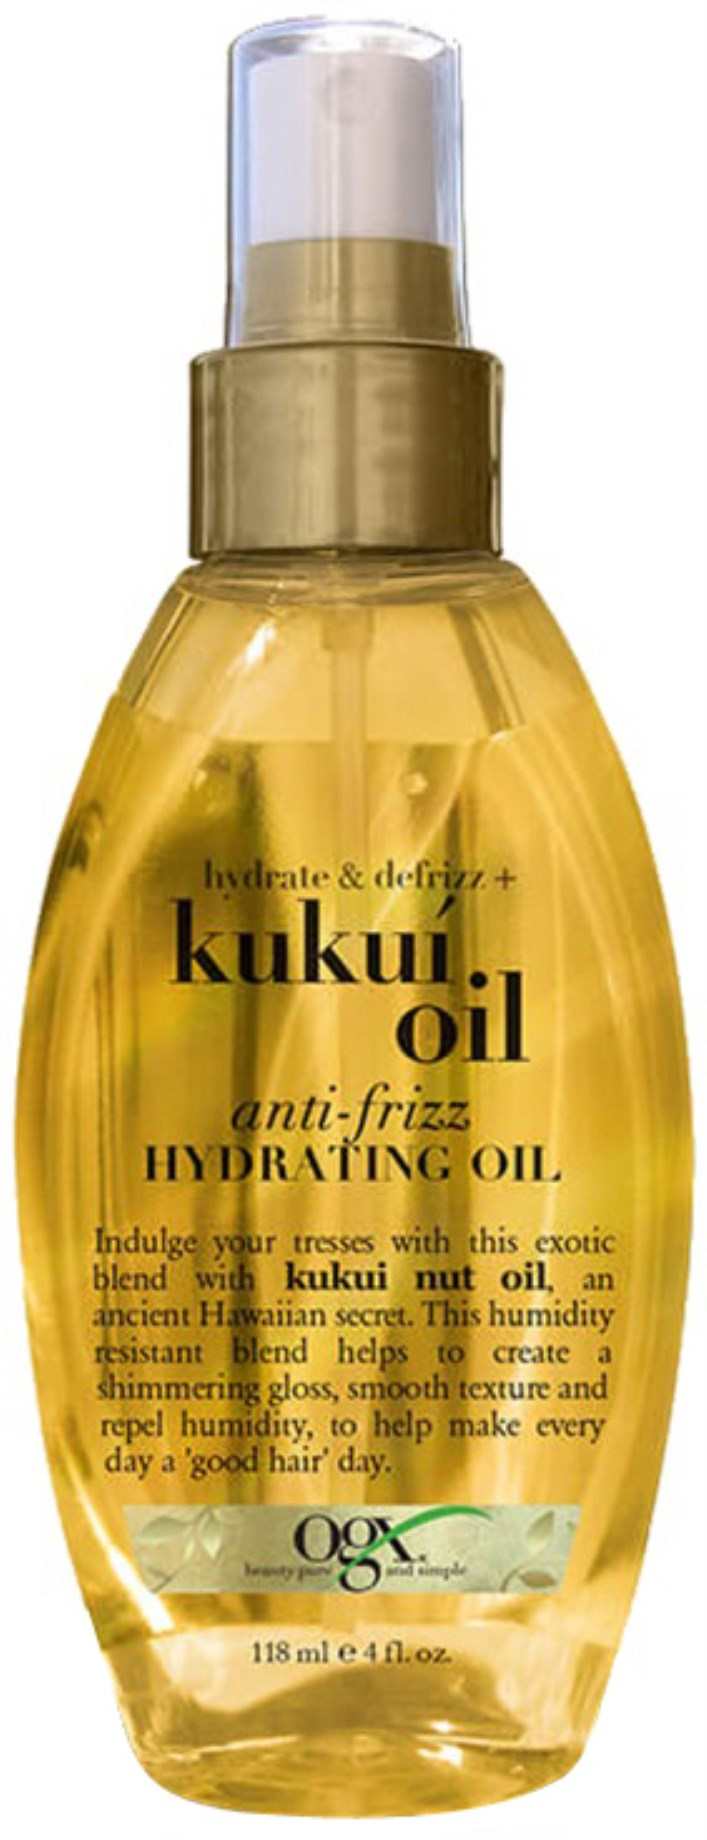 OGX Kukui Oil Anti-Frizz Hydrating Oil,  - OGX